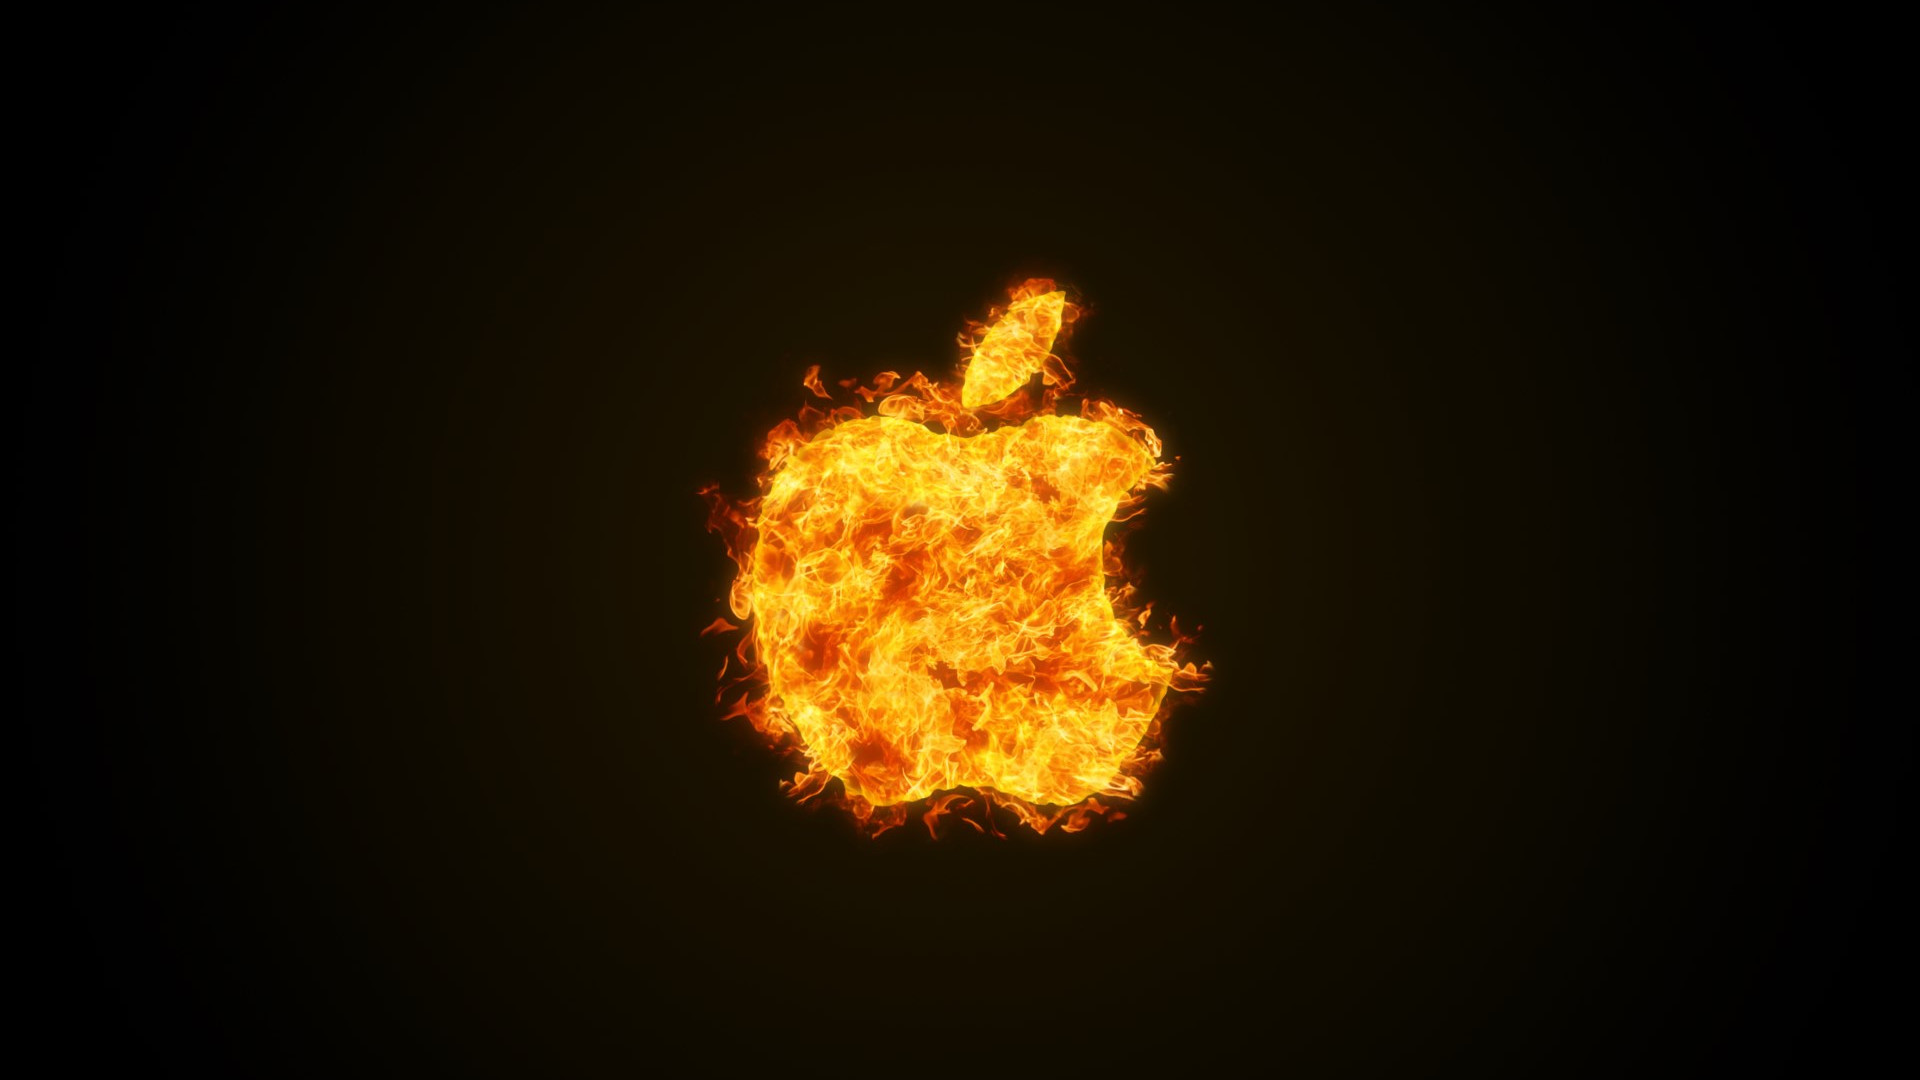 Apple fire wallpaper 1920x1080